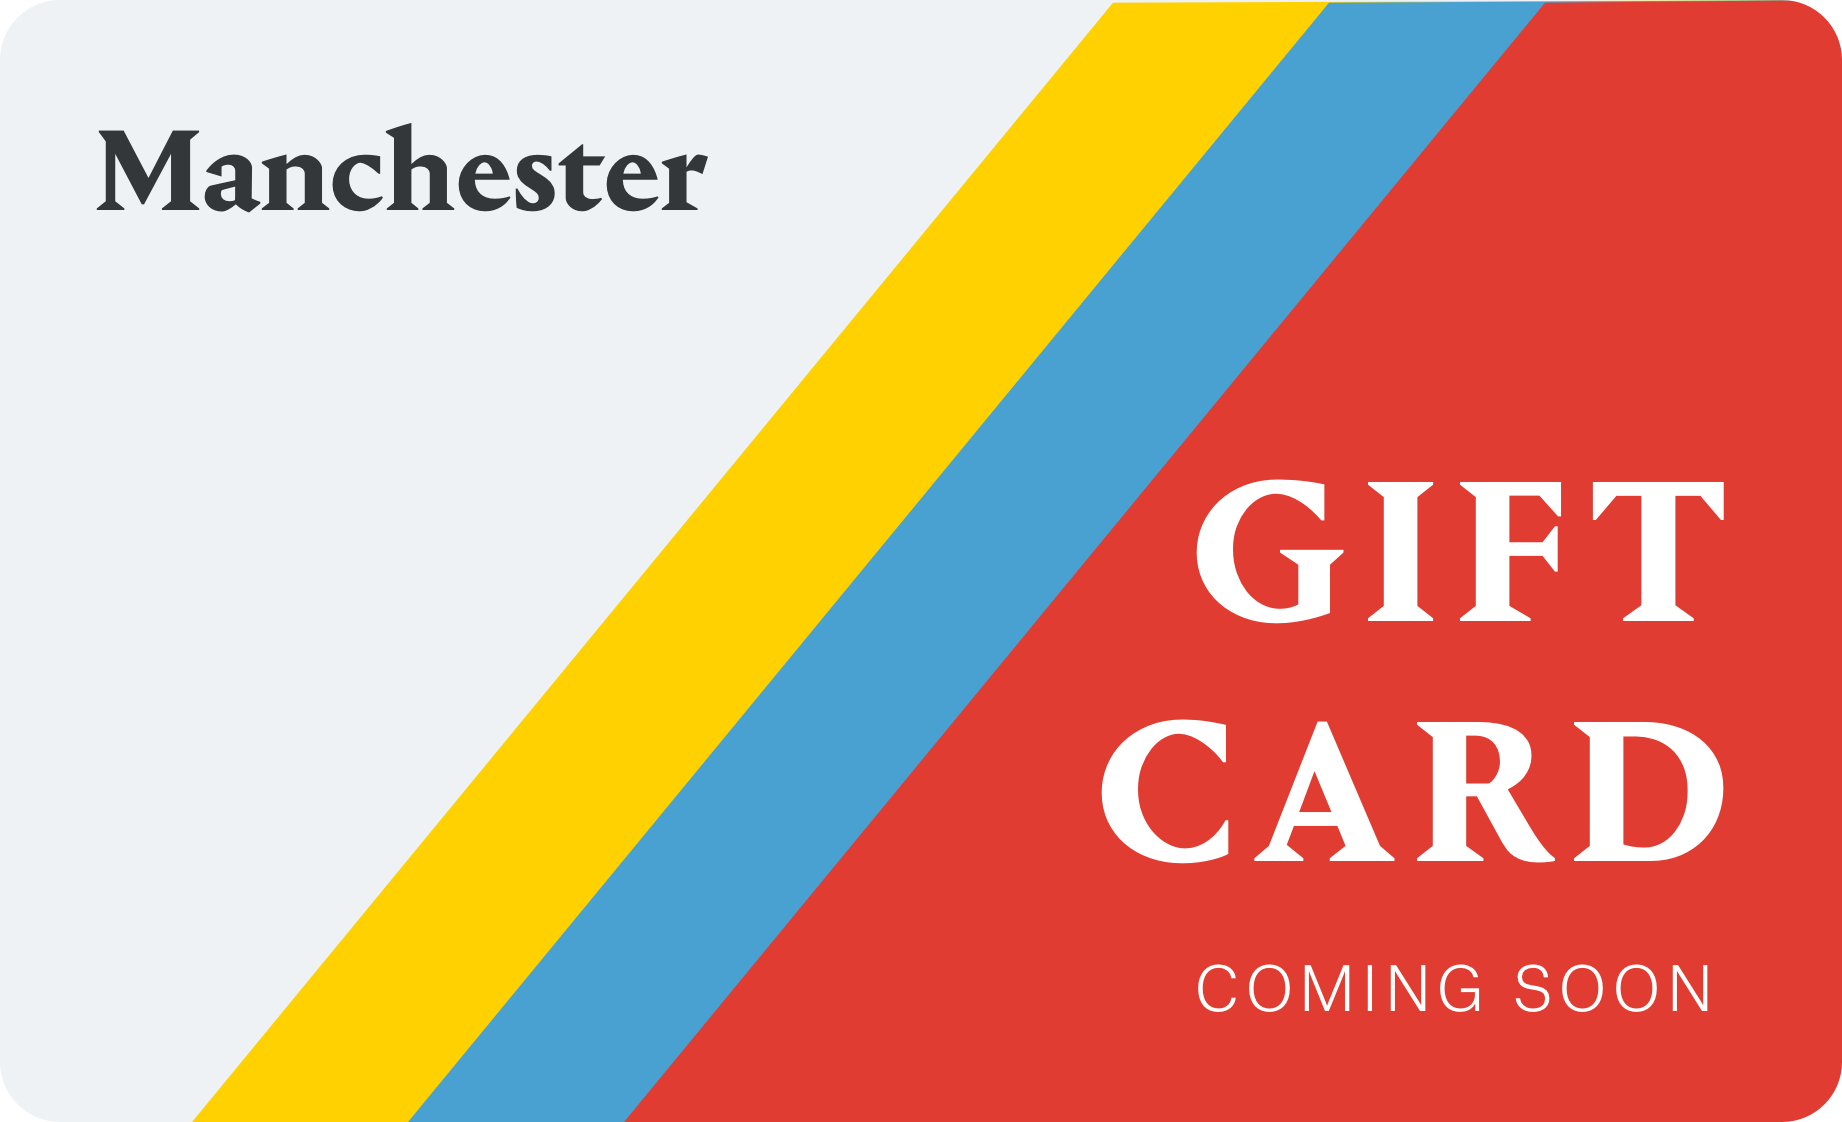 Manchester Gift Card